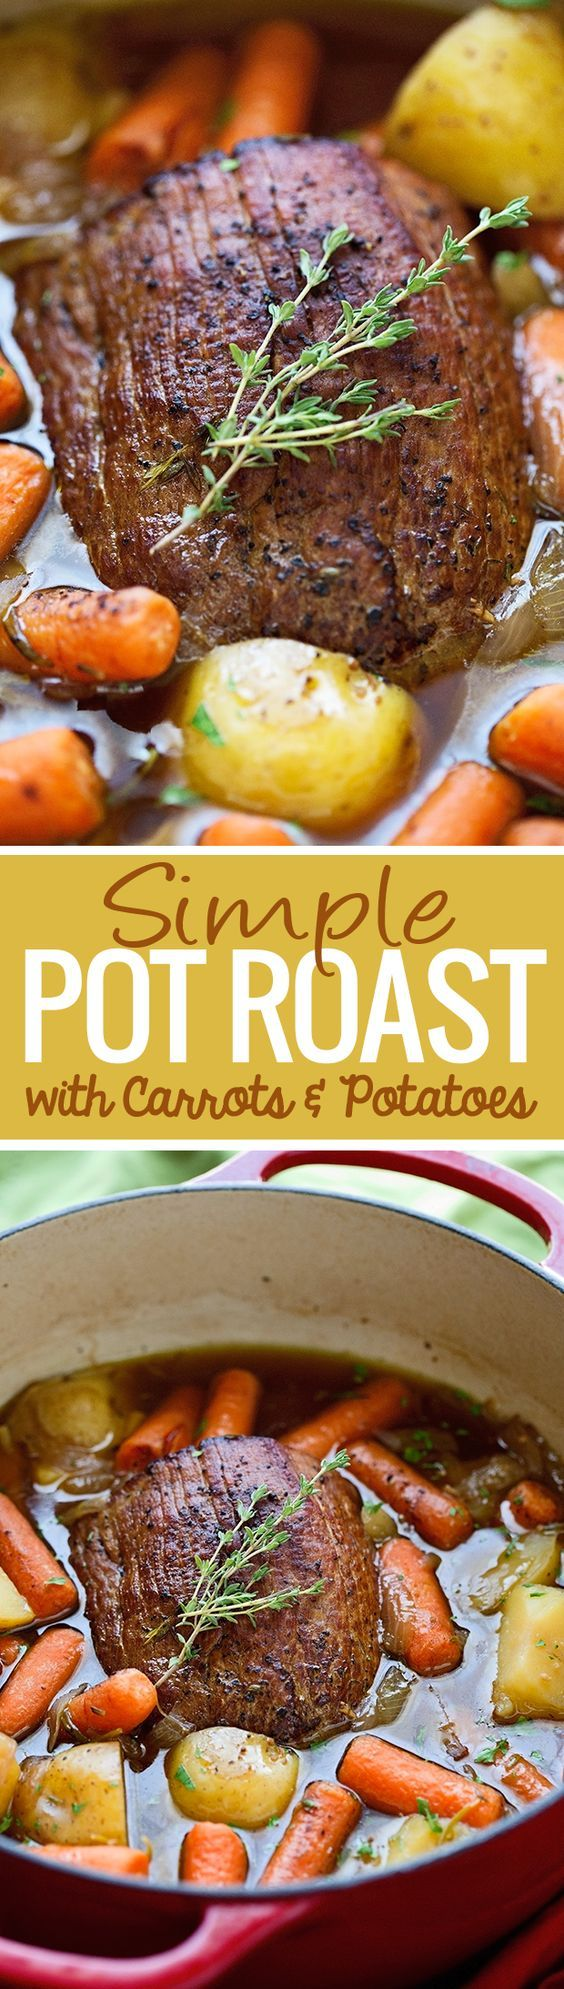 Pot Roast with Carrots and Potatoes | Repas | Pinterest | Pot roast ...